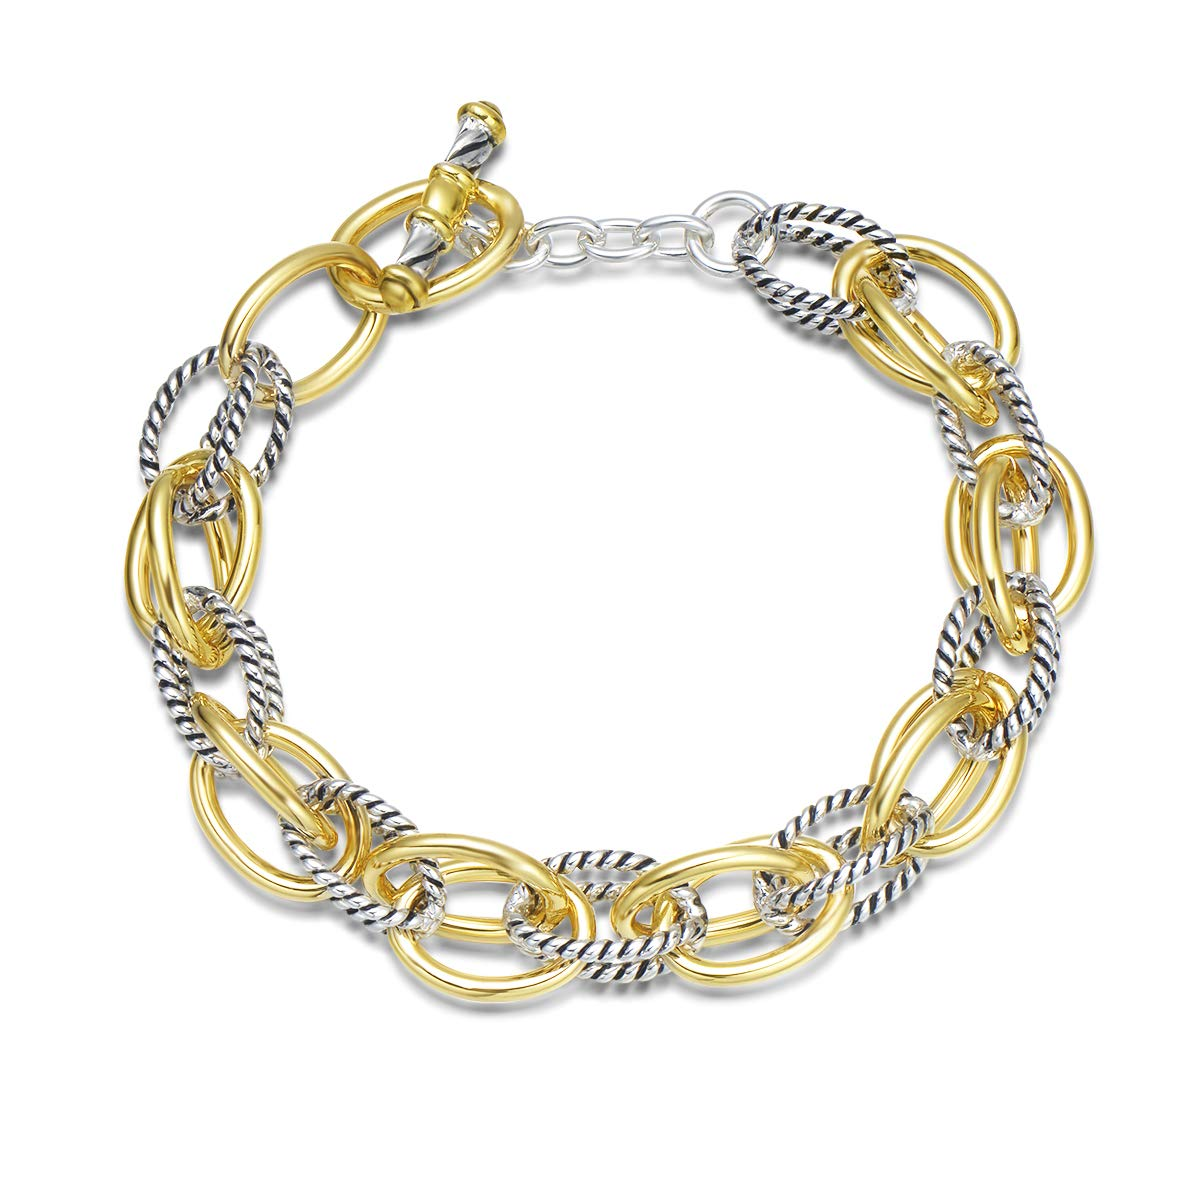 UNY Bracelet Designer Brand Inspired Antique Women Jewelry Double Cable Link Wire Vintage Valentine (2 Tone)